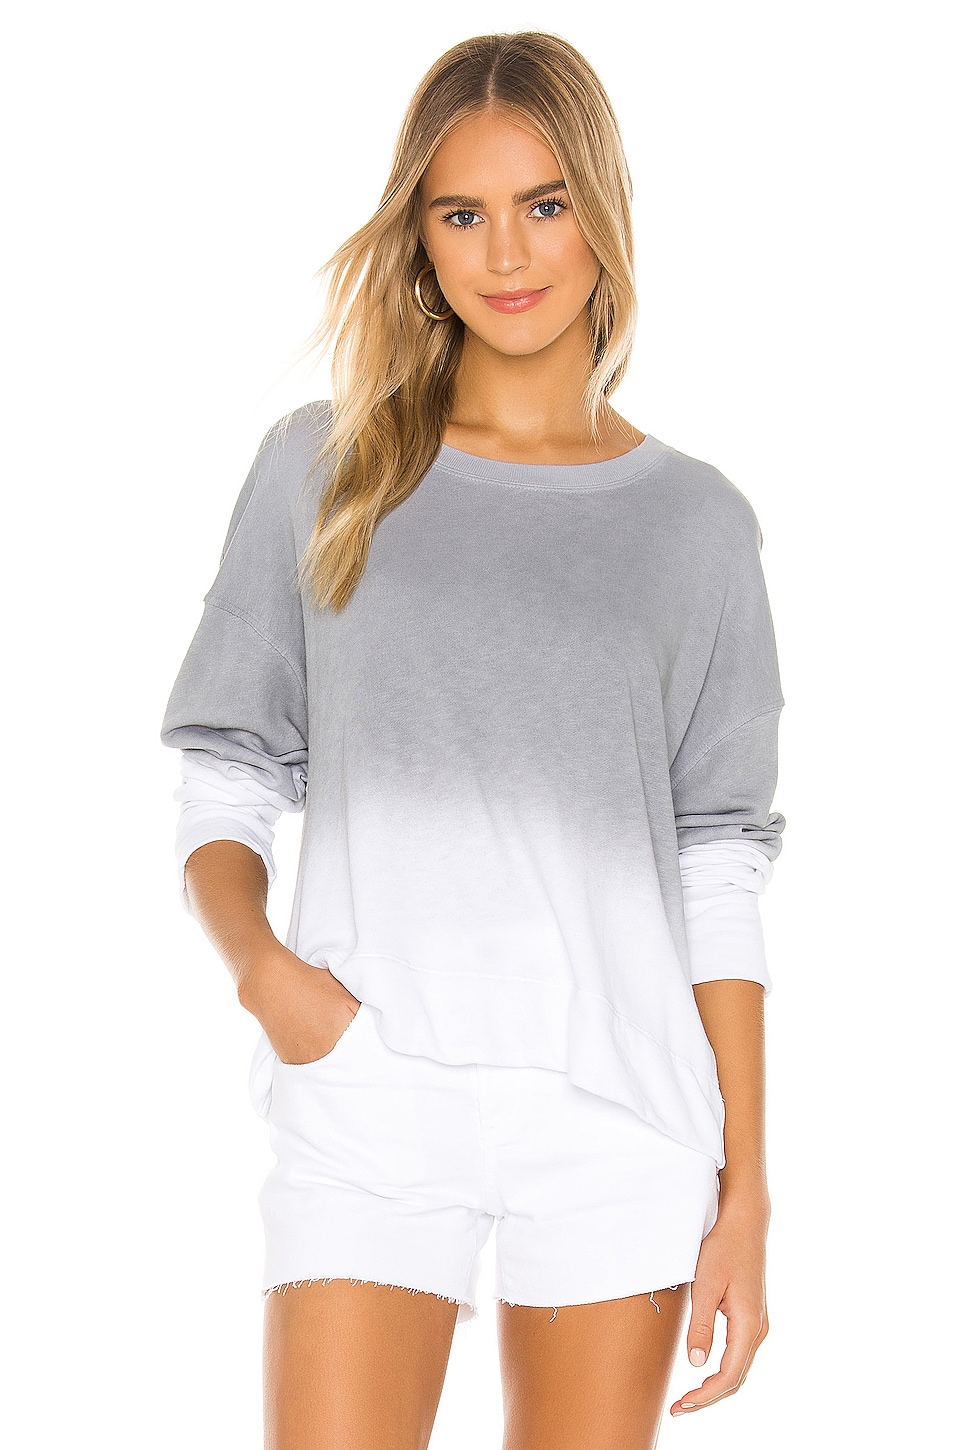 James Perse Spray Dye Sweat Top in Arctic White